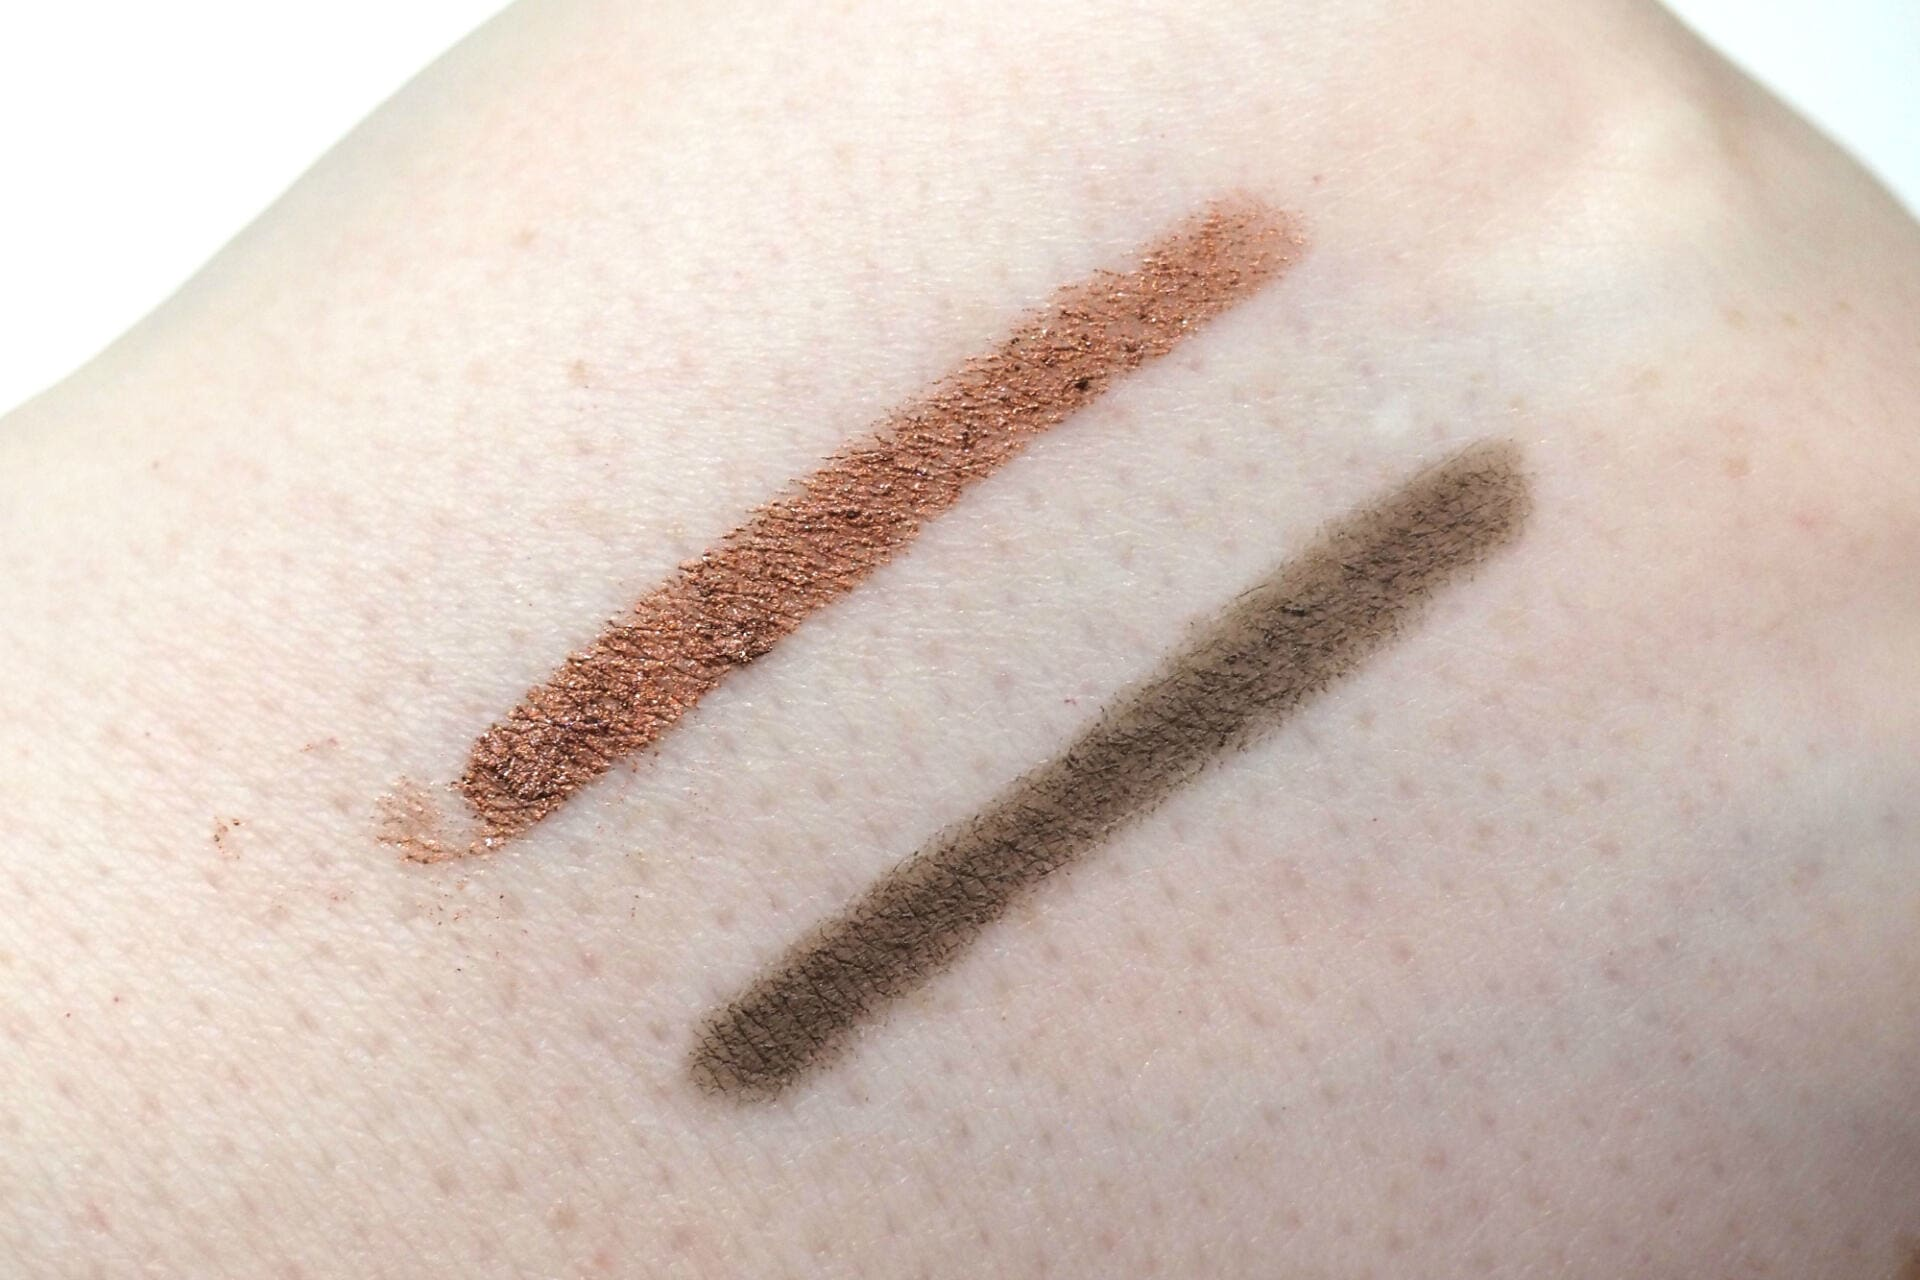 Pixi Summer Glow Makeup Picks Review and Swatches